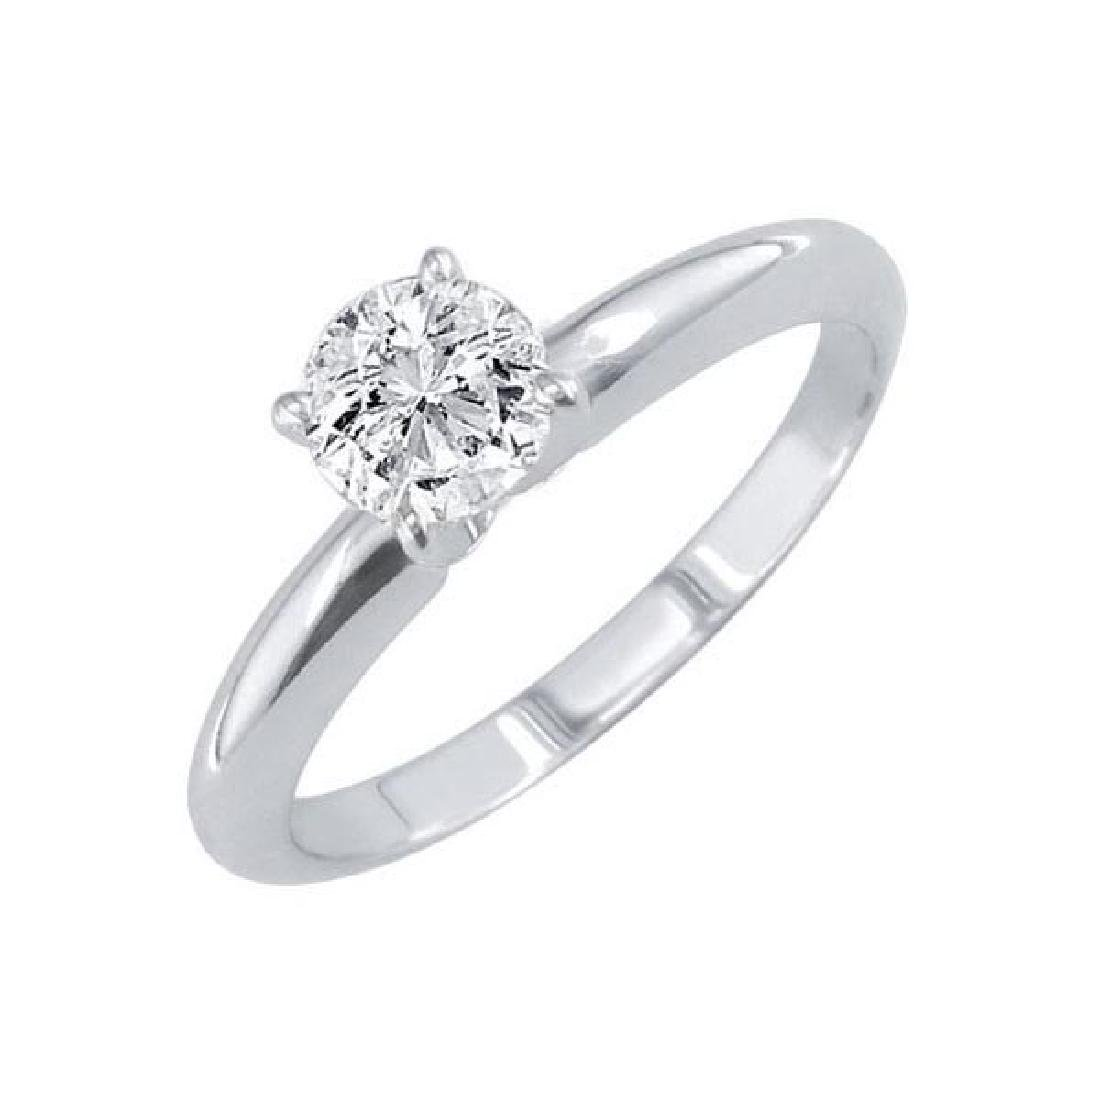 Certified 0.9 CTW Round Diamond Solitaire 14k Ring E/SI